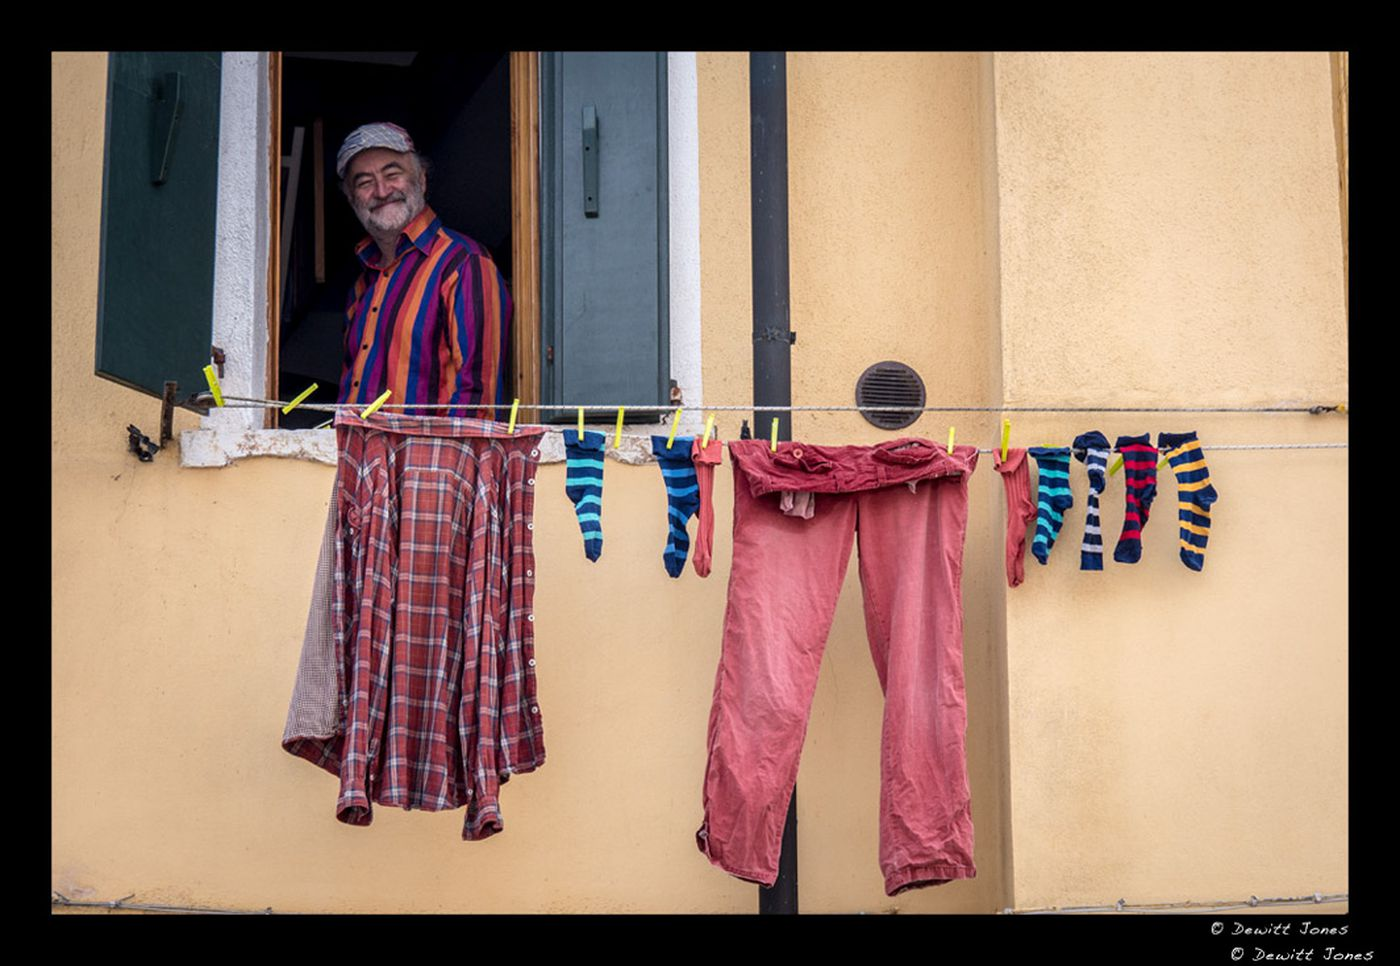 Image: Man smiles out of an open window with laundry hanging on the line in front of him